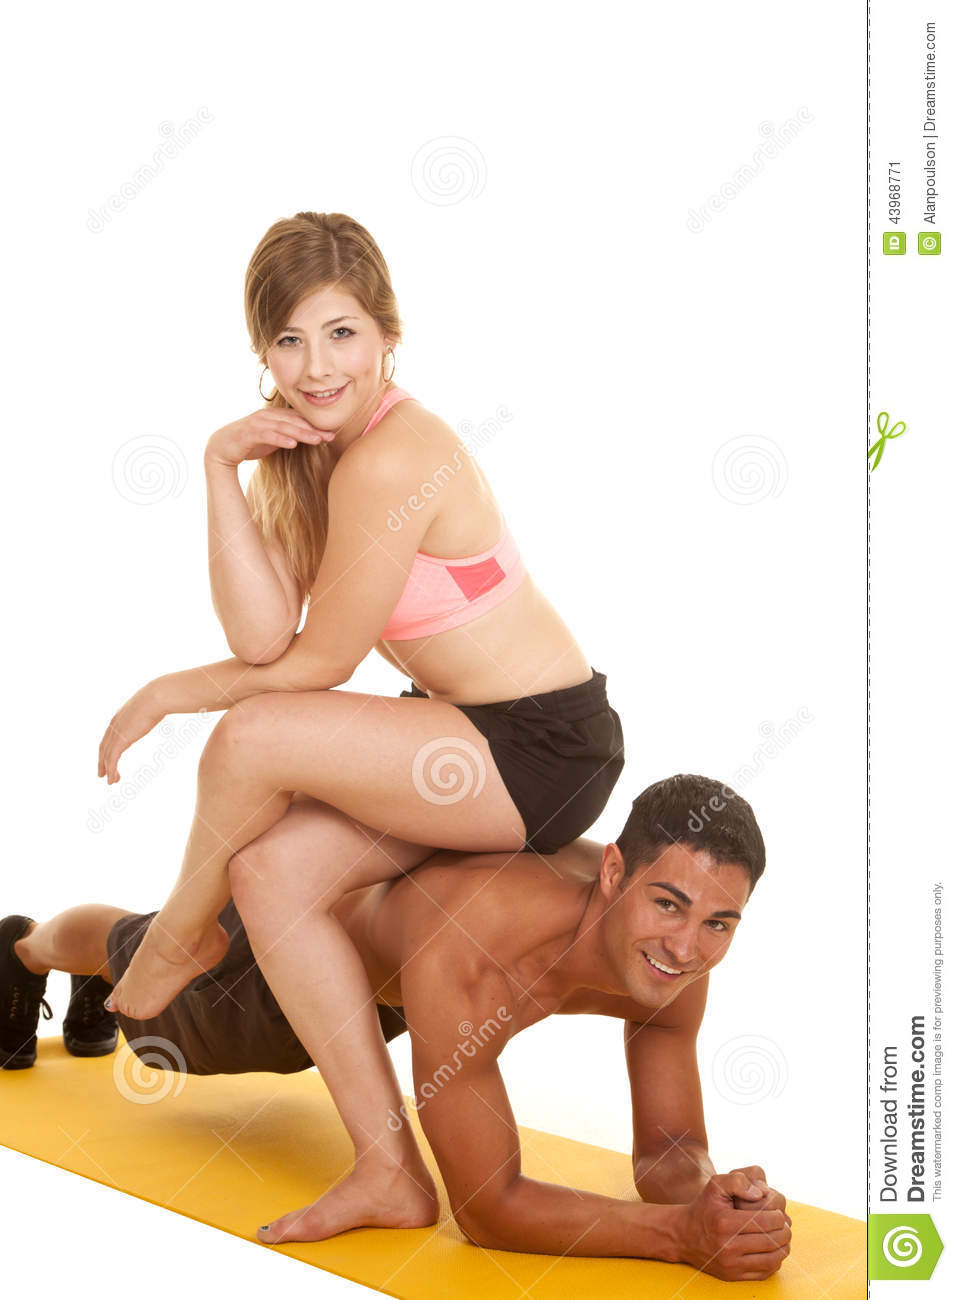 Woman sitting on mans face